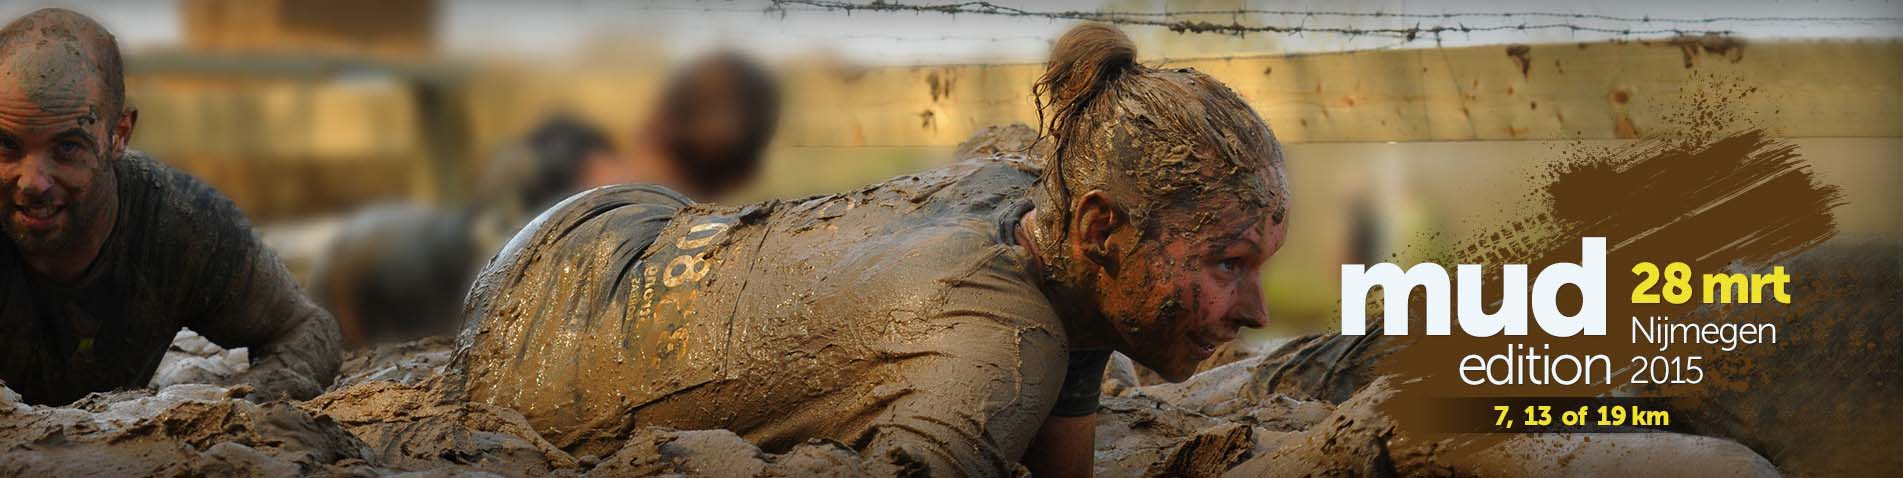 obstacle-run-mud-edition-nl